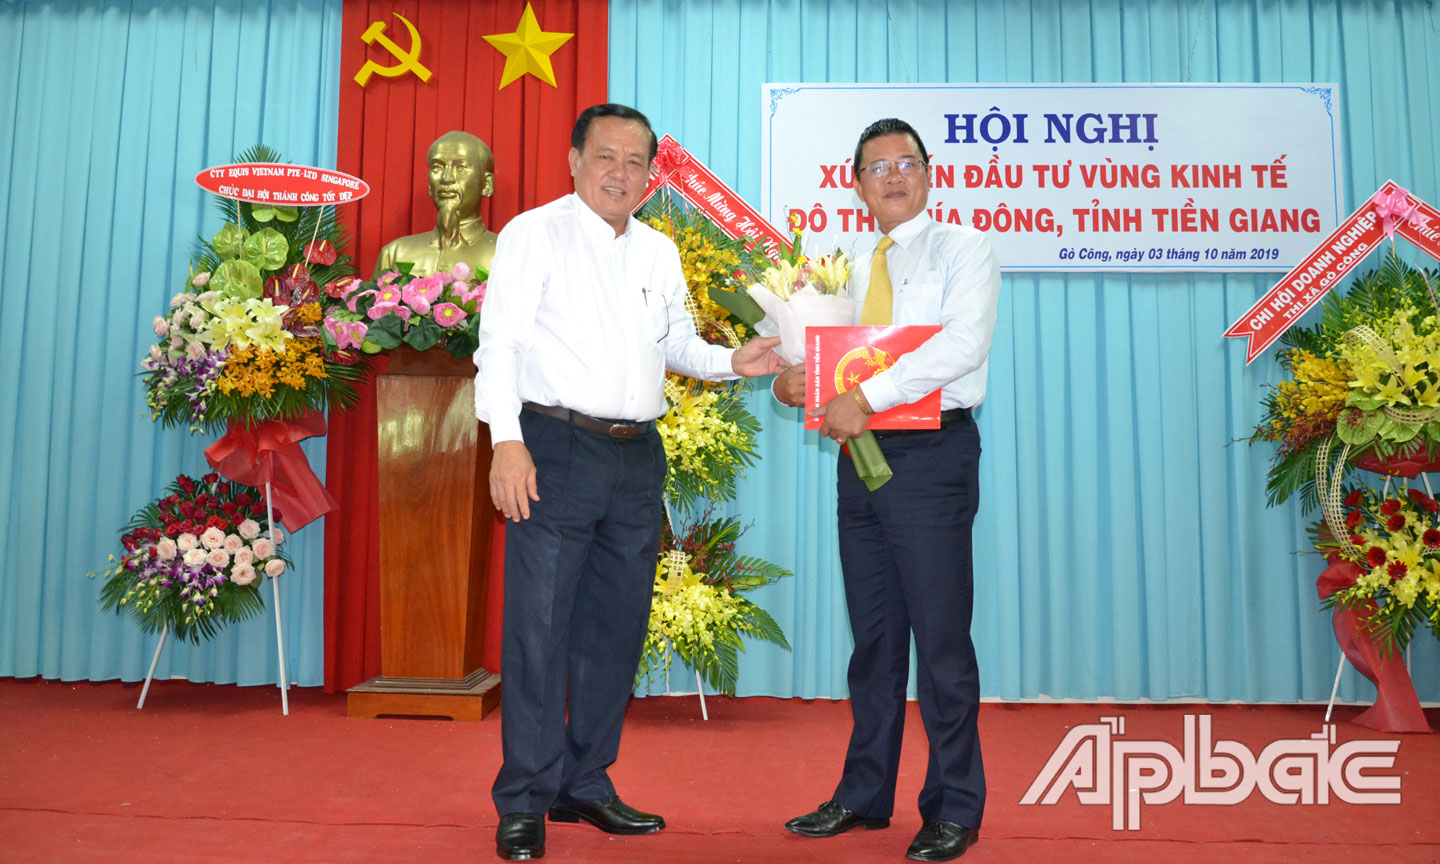 ABO – On October 3, Go Cong town People's Committee organized the conference on investment promotion of the Eastern urban economy area, Tien Giang province.